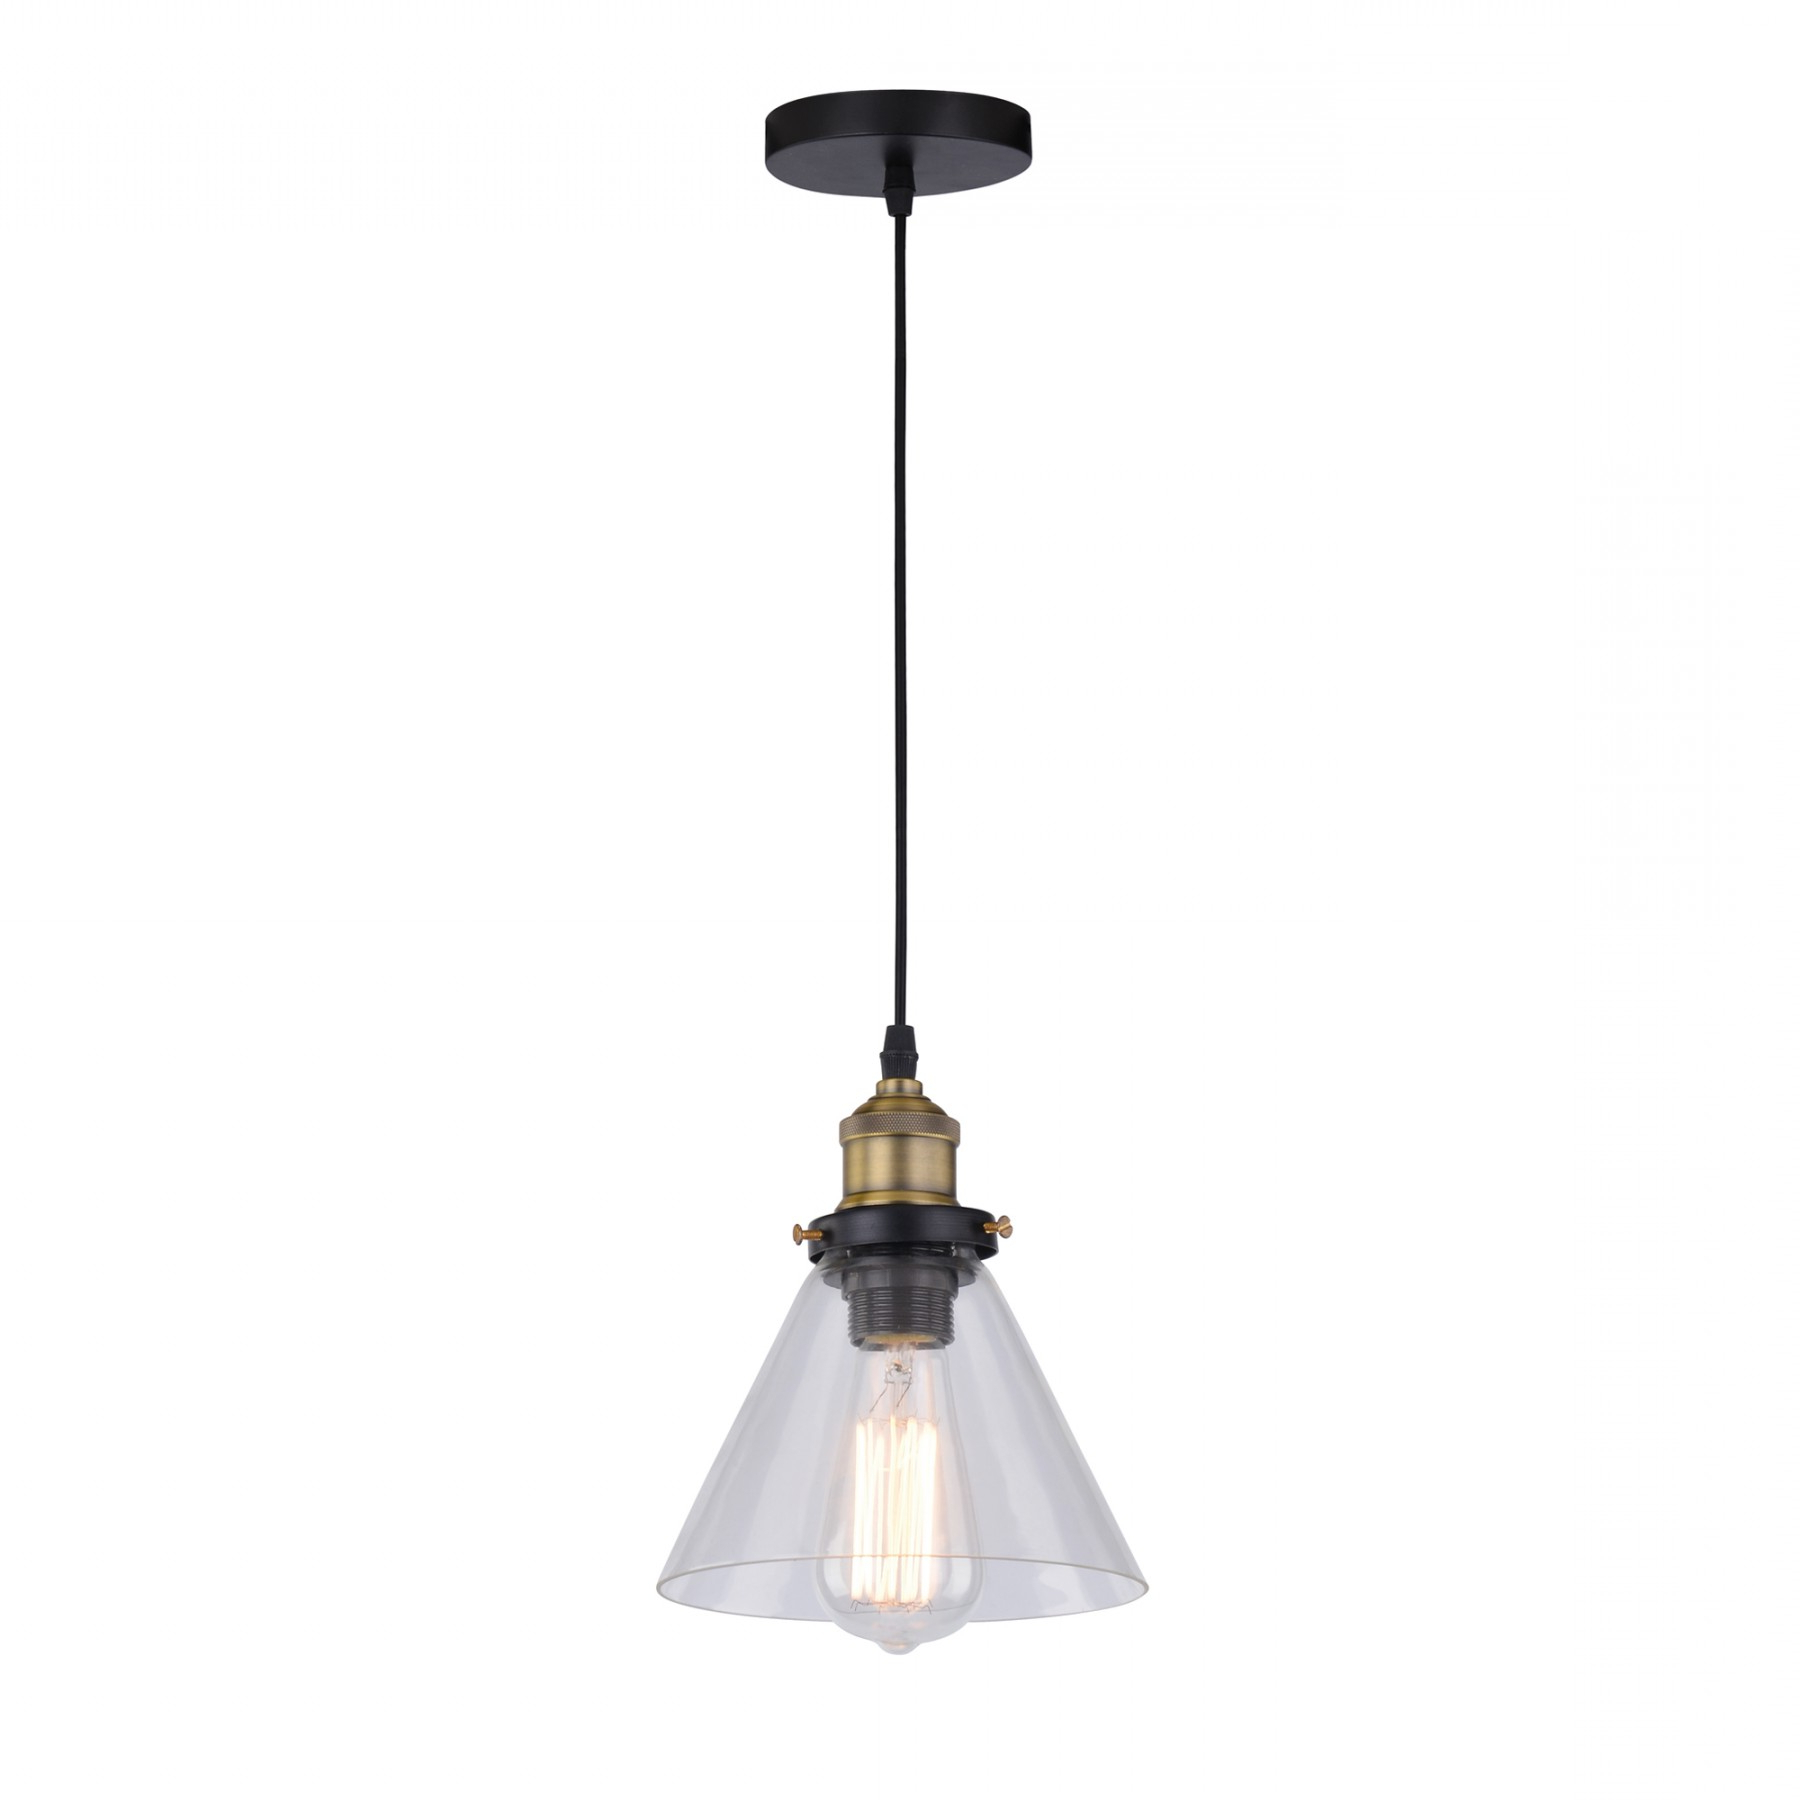 Britop Conrad Cone Ceiling Pendant Light Throughout Famous Guro 1 Light Cone Pendants (View 7 of 25)